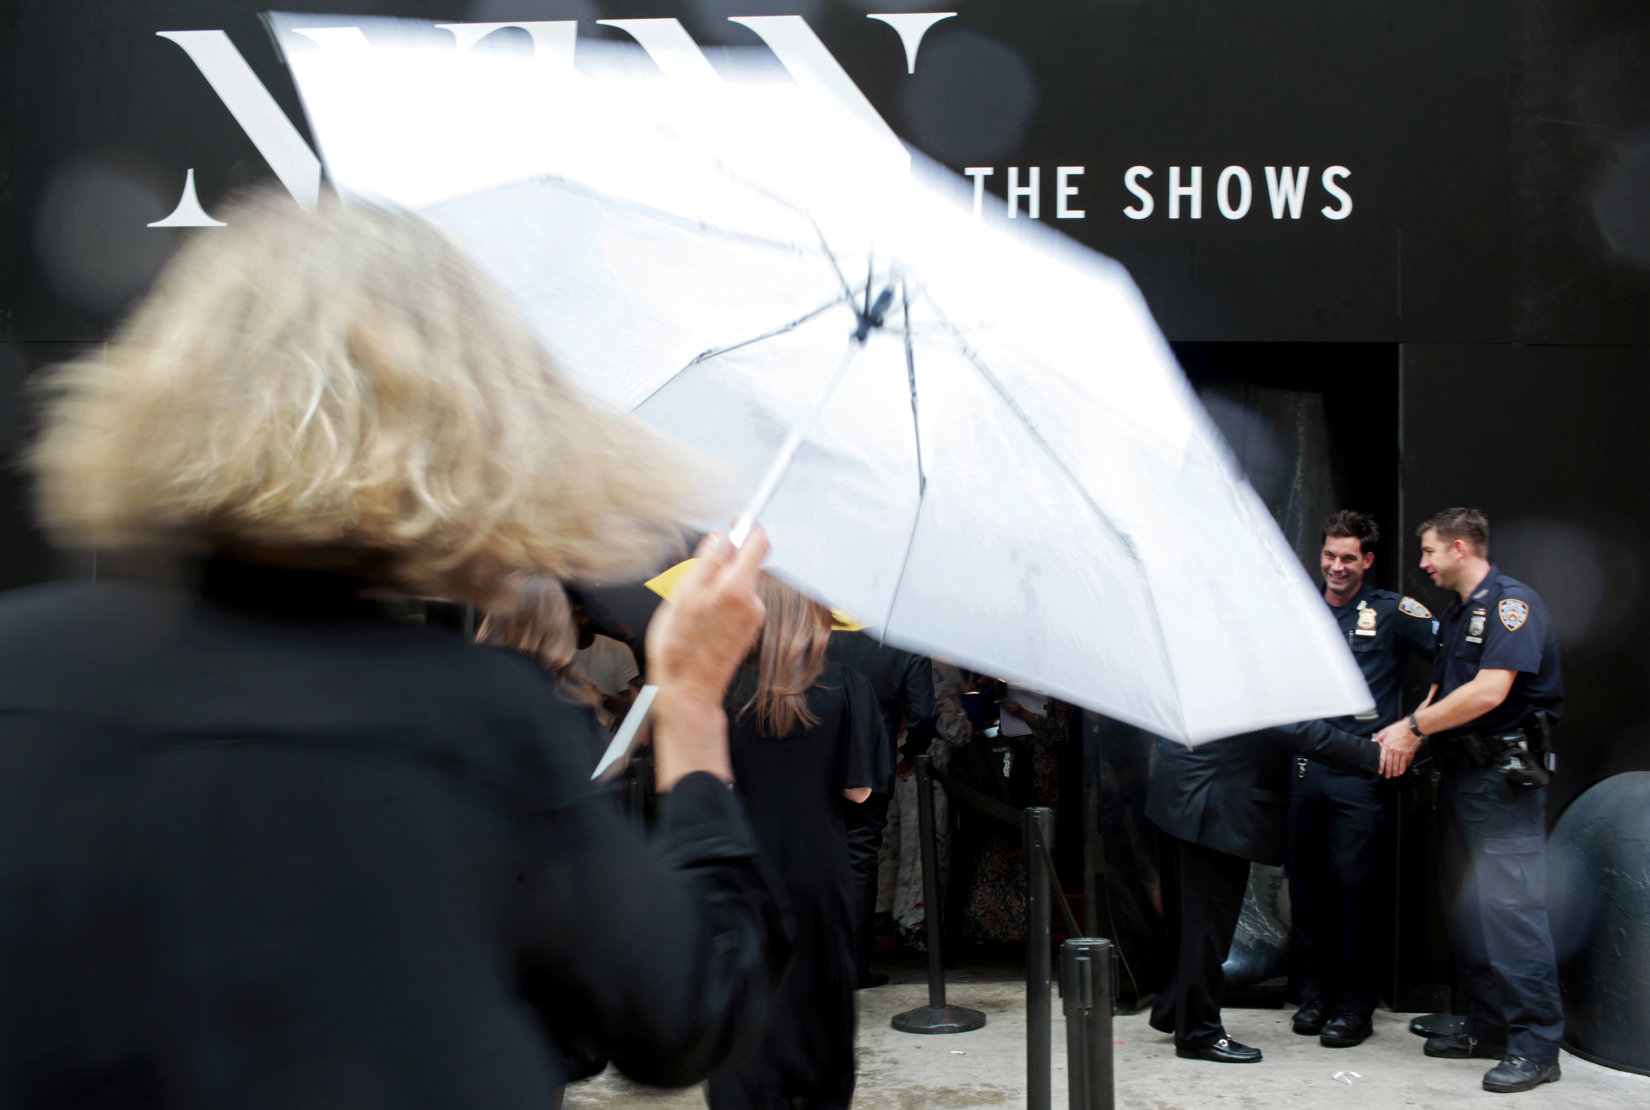 A crowd enters the 360 W. 33rd St. venue on a rainy first day of New York Fashion Week in Manhattan, NY on September 10, 2015.(For The New York Times)